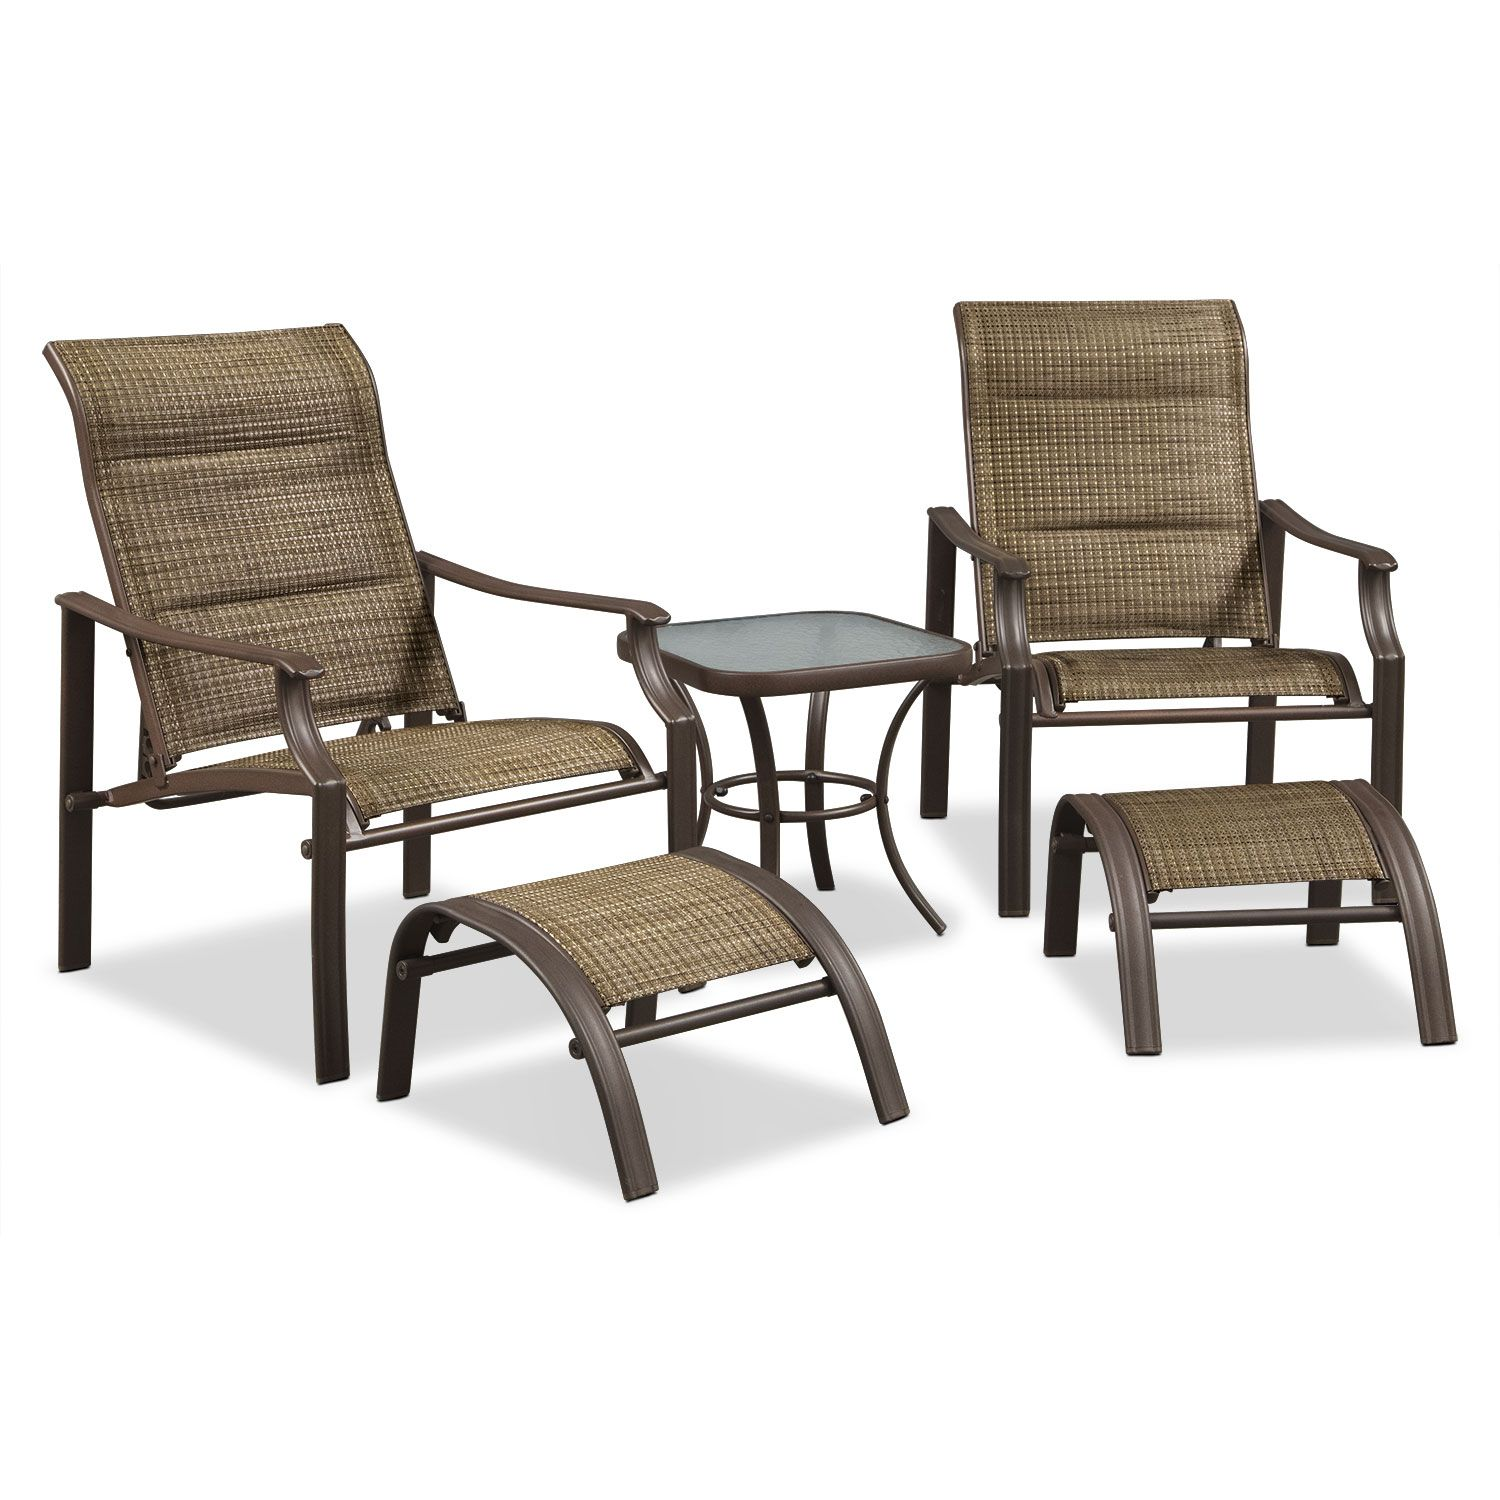 Outdoor Furniture Terrace 5 Piece Chat Set Brown